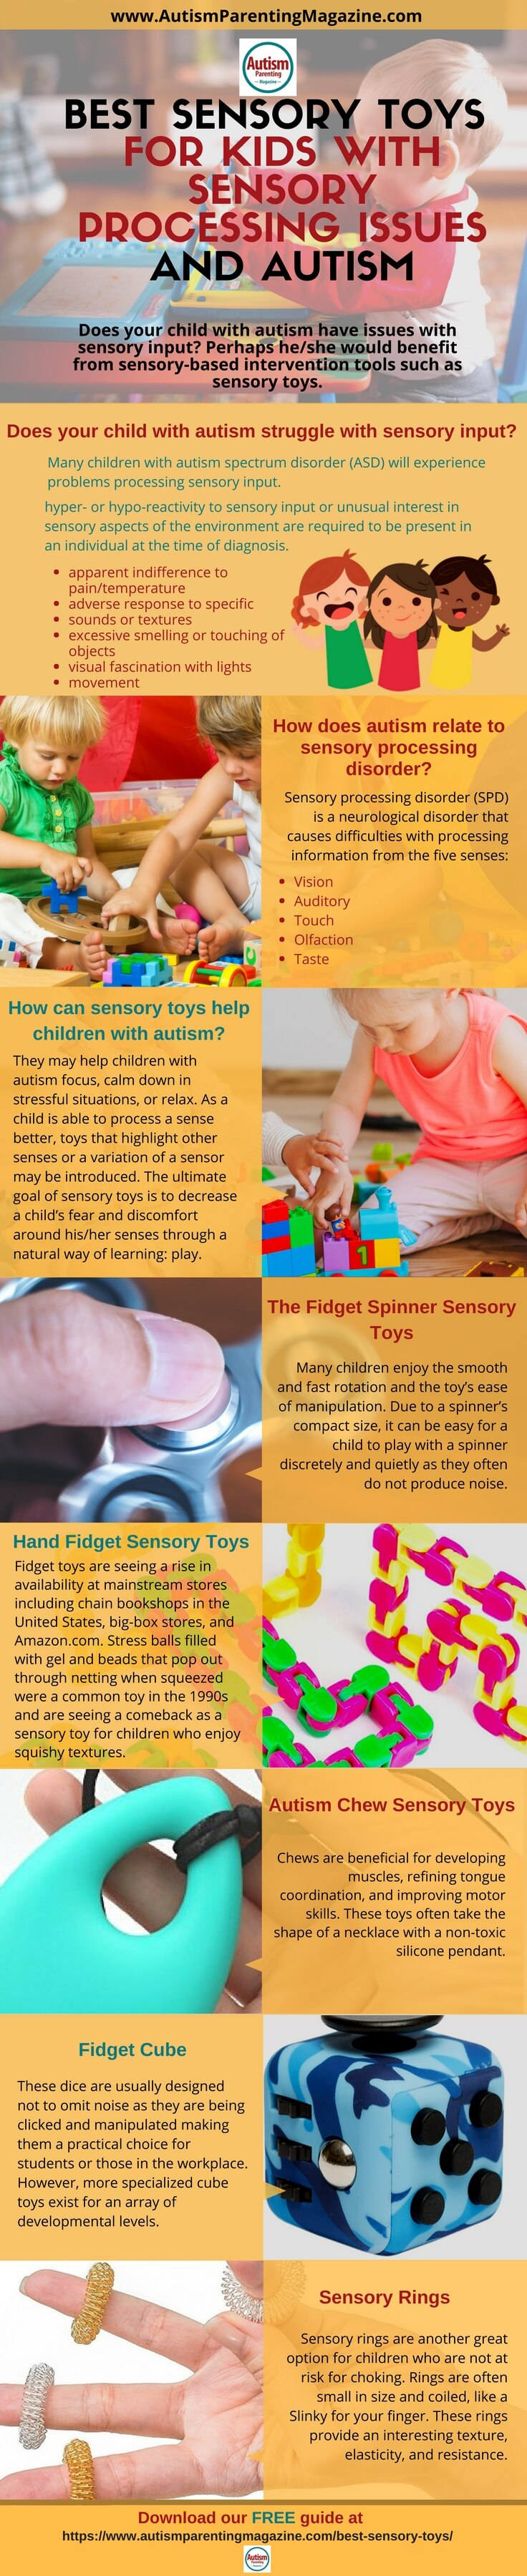 Best Sensory Toys for Kids with Sensory Processing Issues and Autism